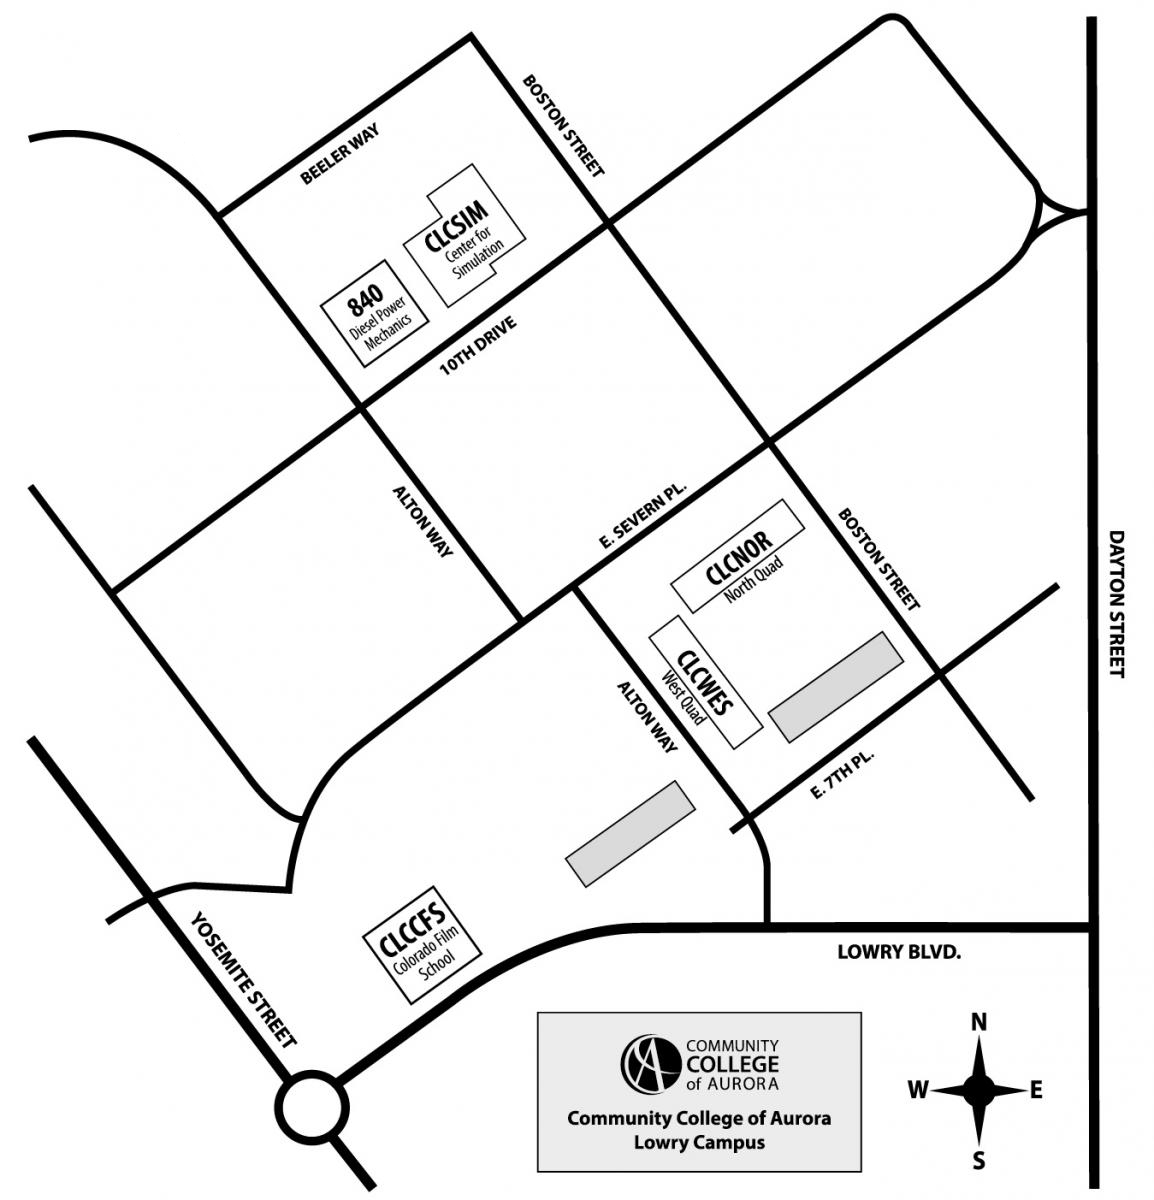 Maps of Lowry campus